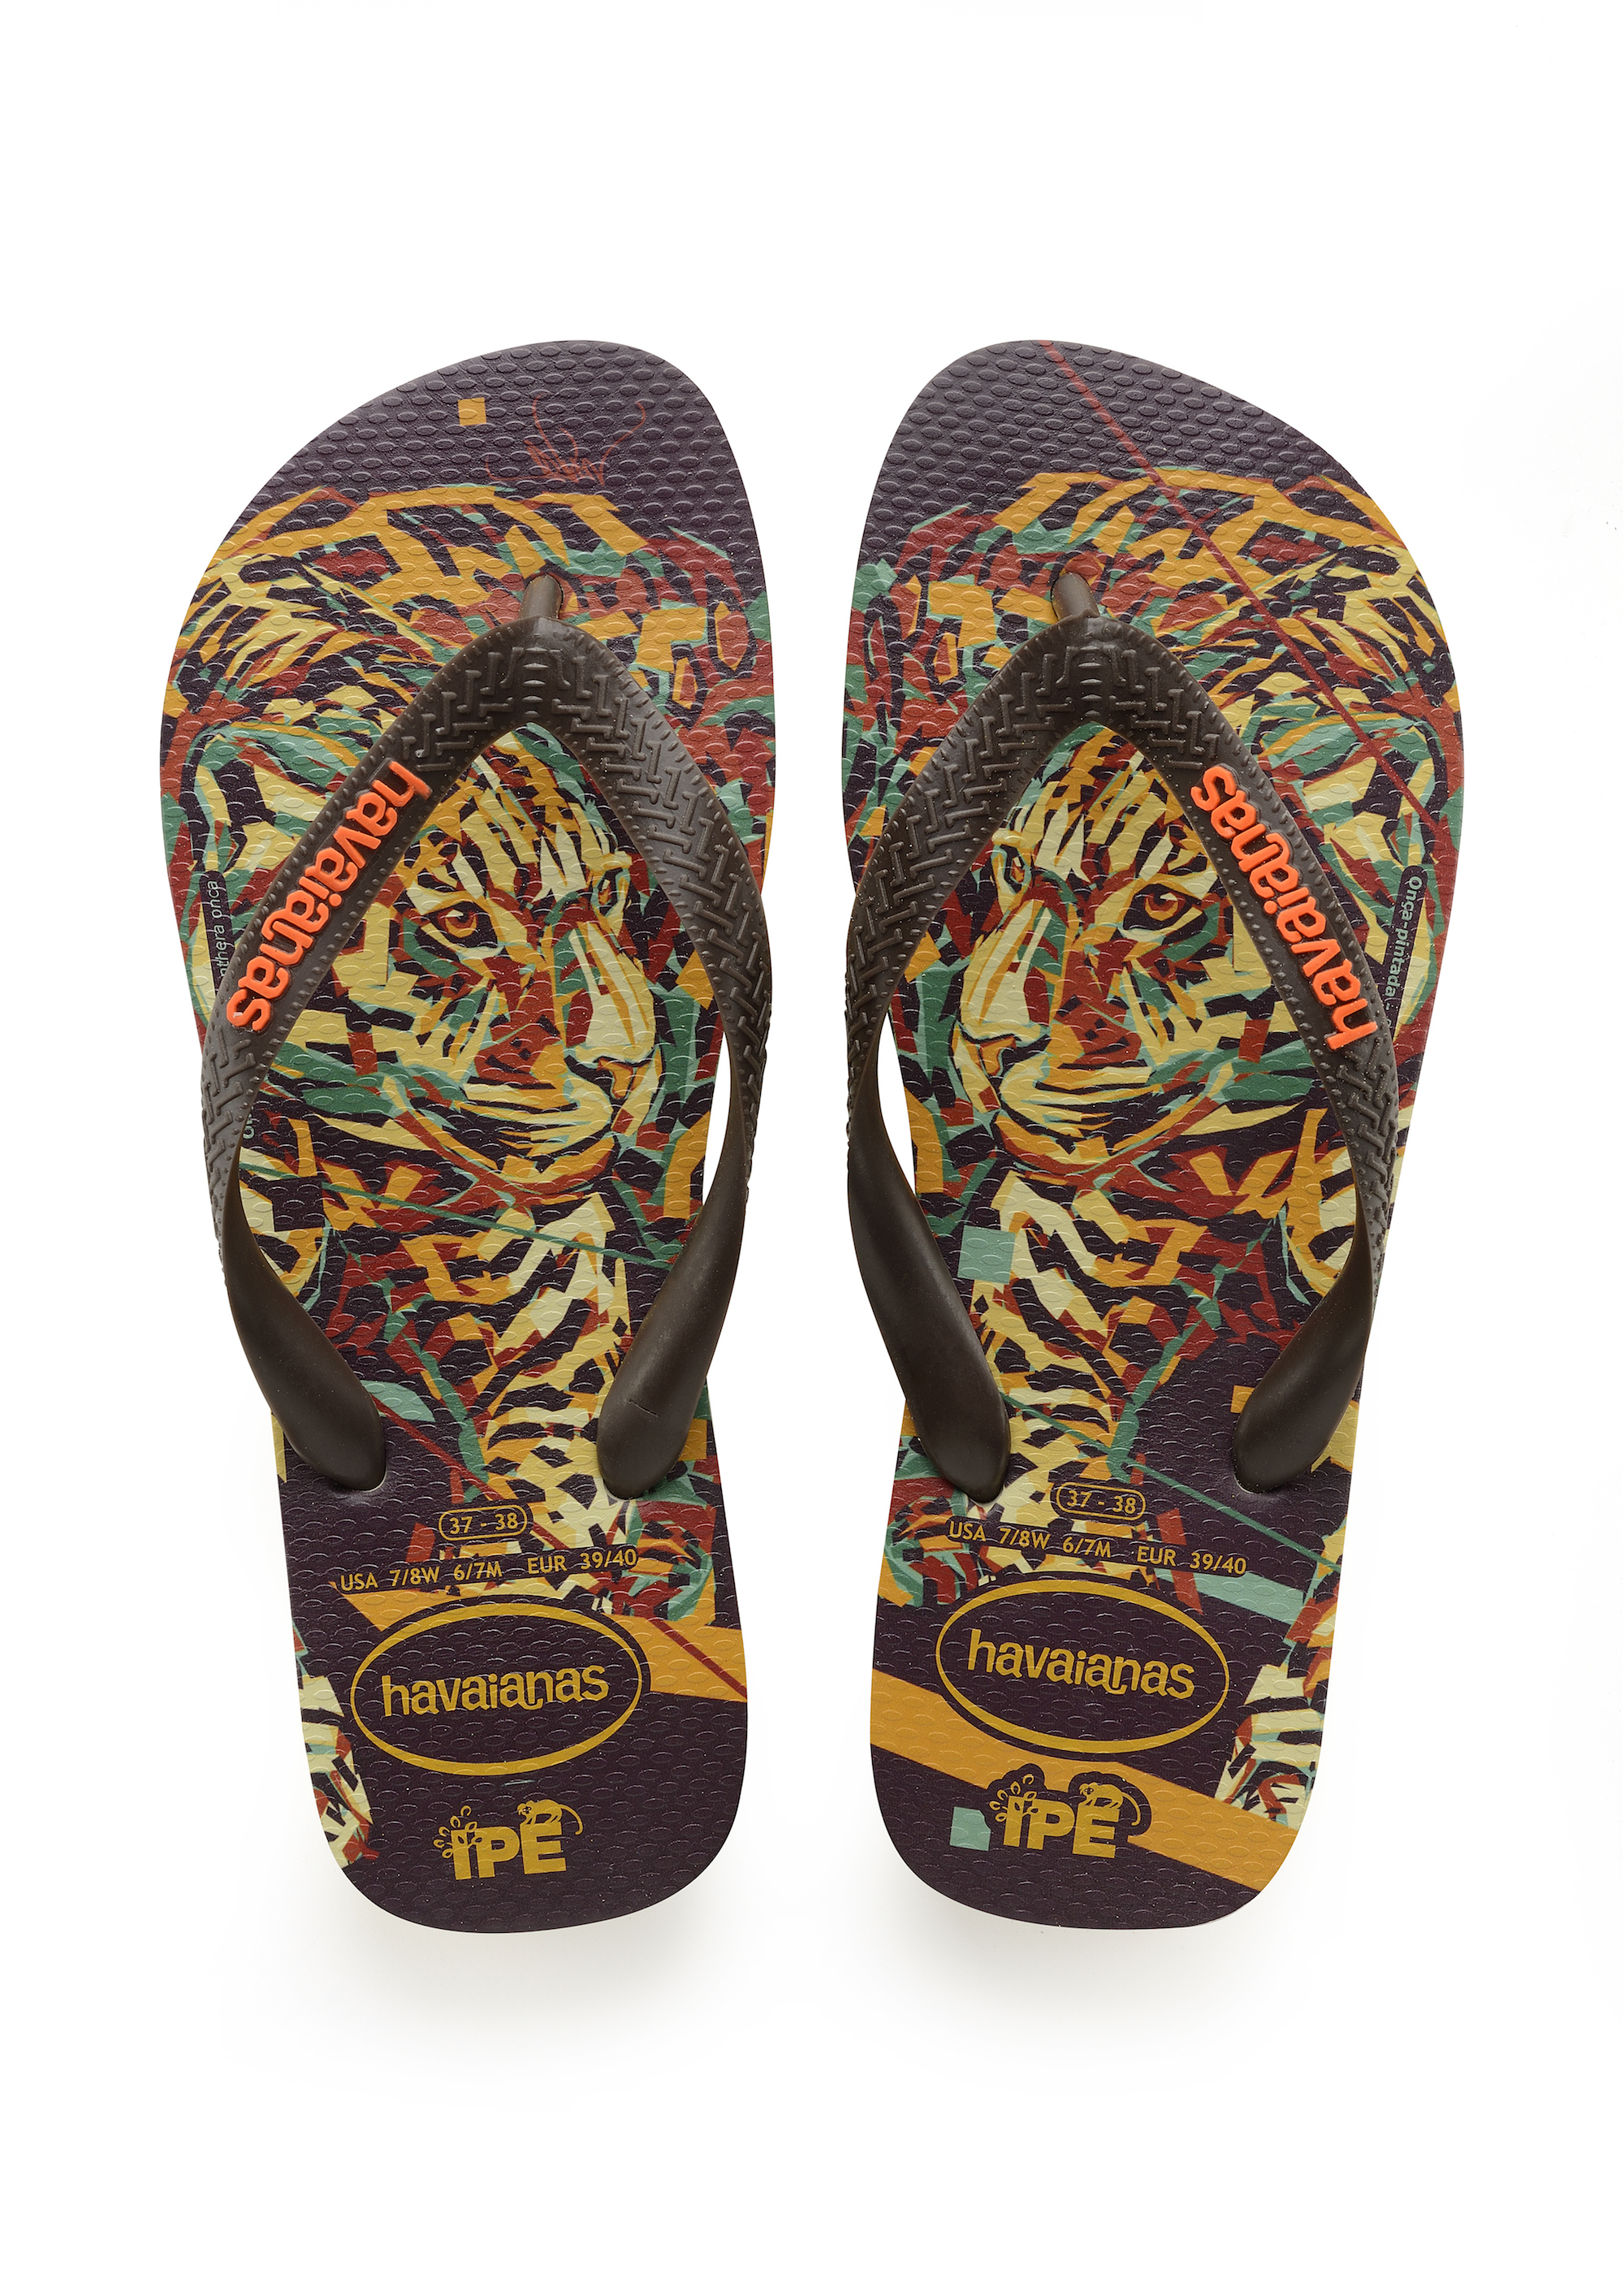 Havaianas x Arlin Graff collaboration cheetah